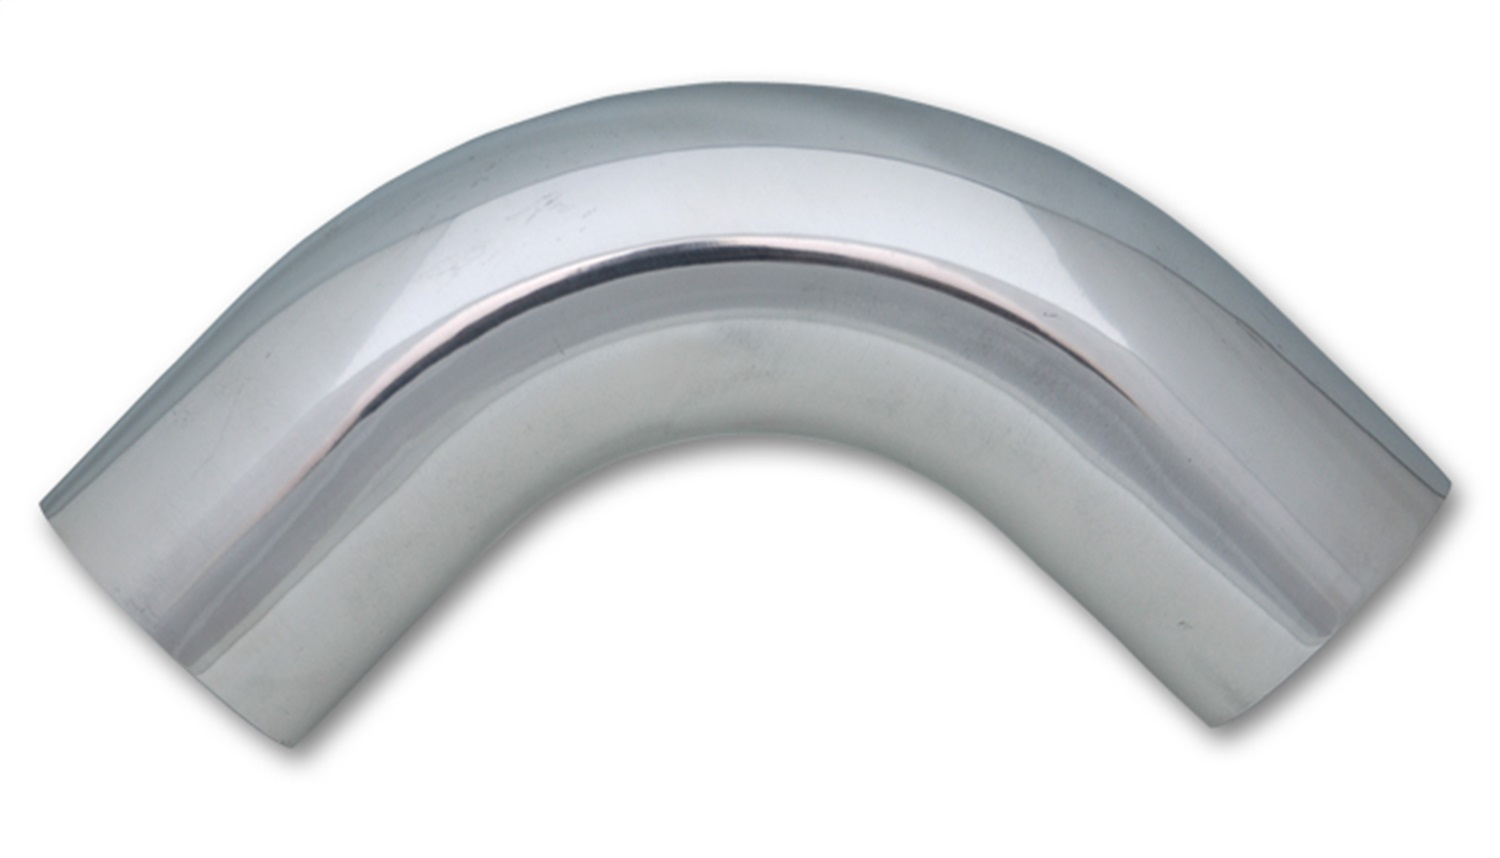 Vibrant Performance 2881 6061 Aluminum 90 Degree Bend